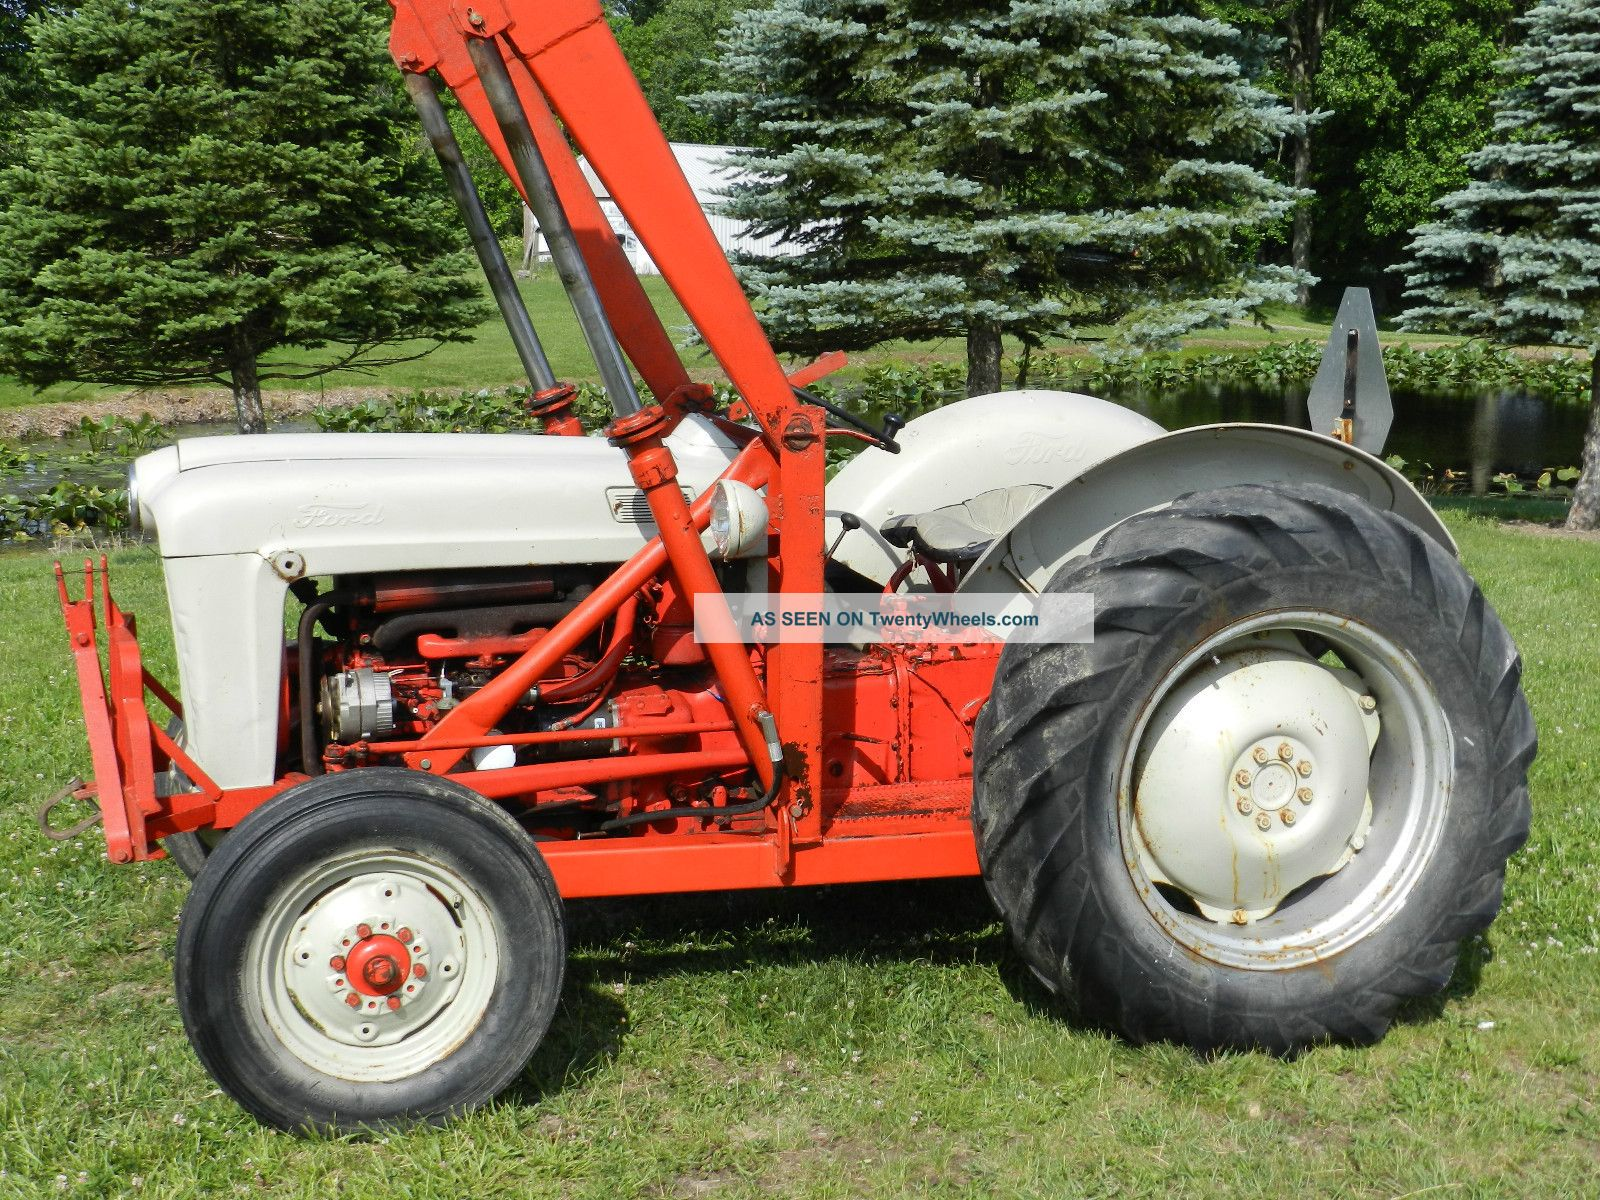 Vintage Tractor Front Loader : Ford tractor front hydraulic loader